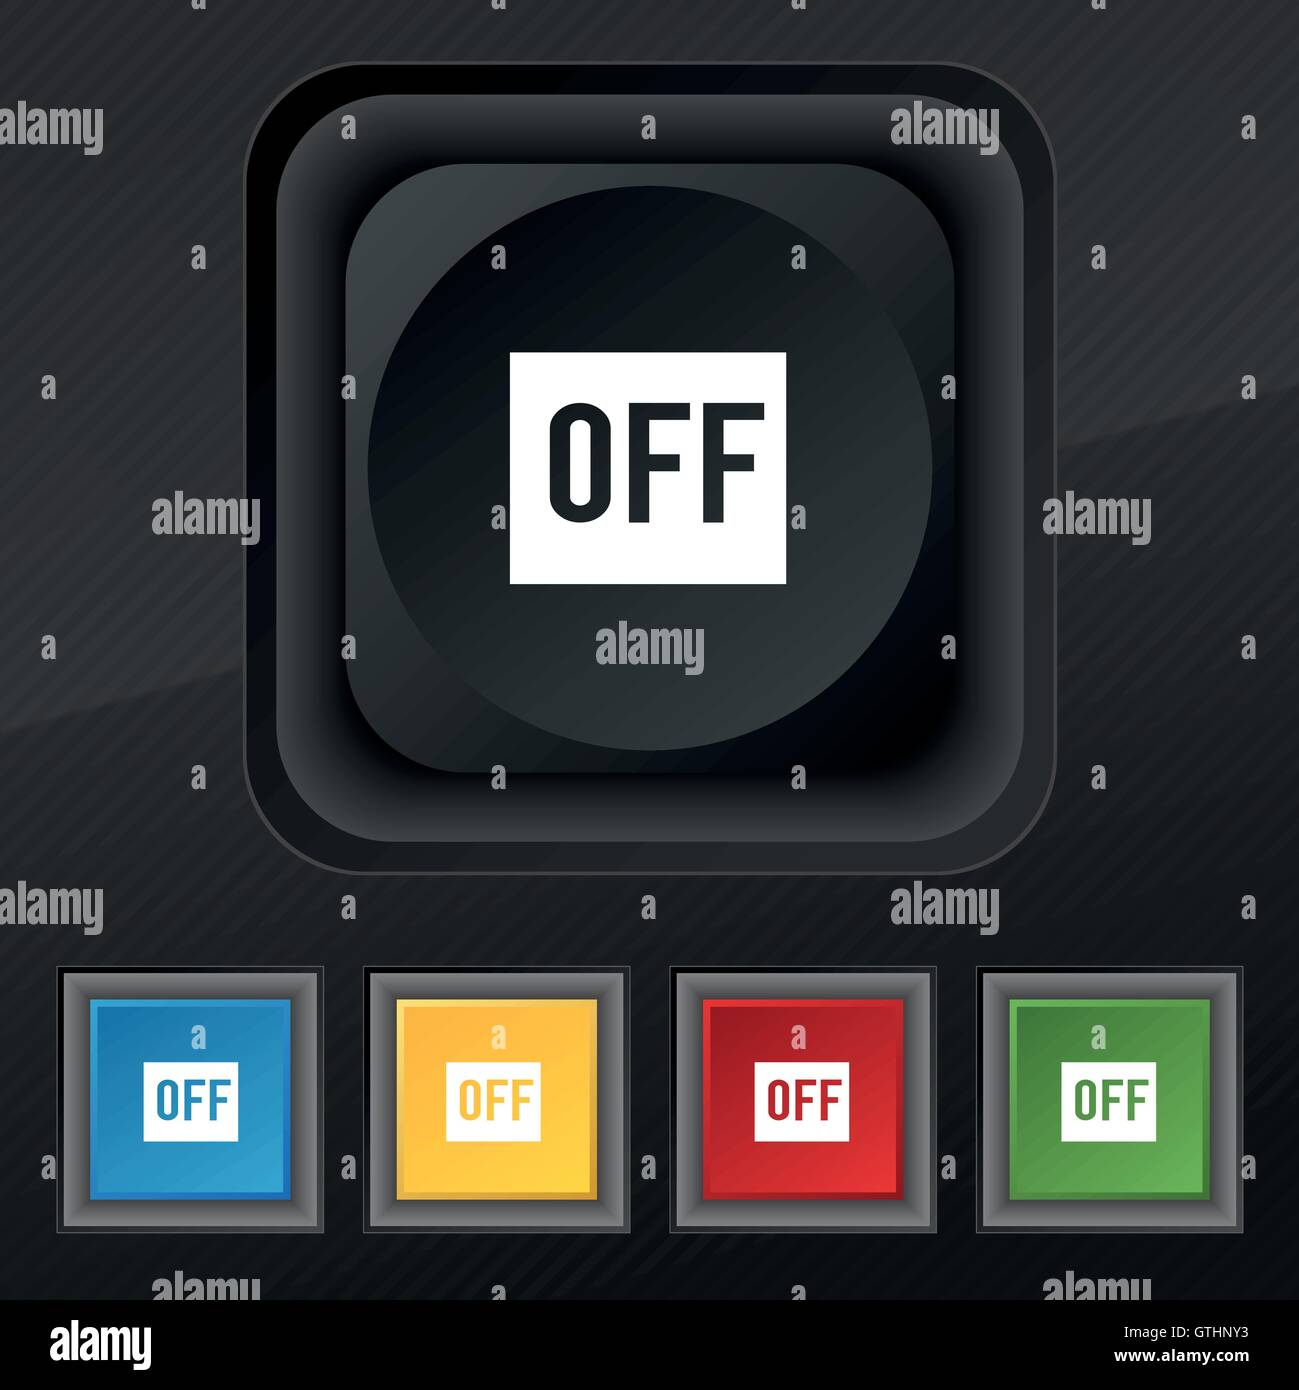 Switch On Off Symbol Stock Photos & Switch On Off Symbol Stock ...